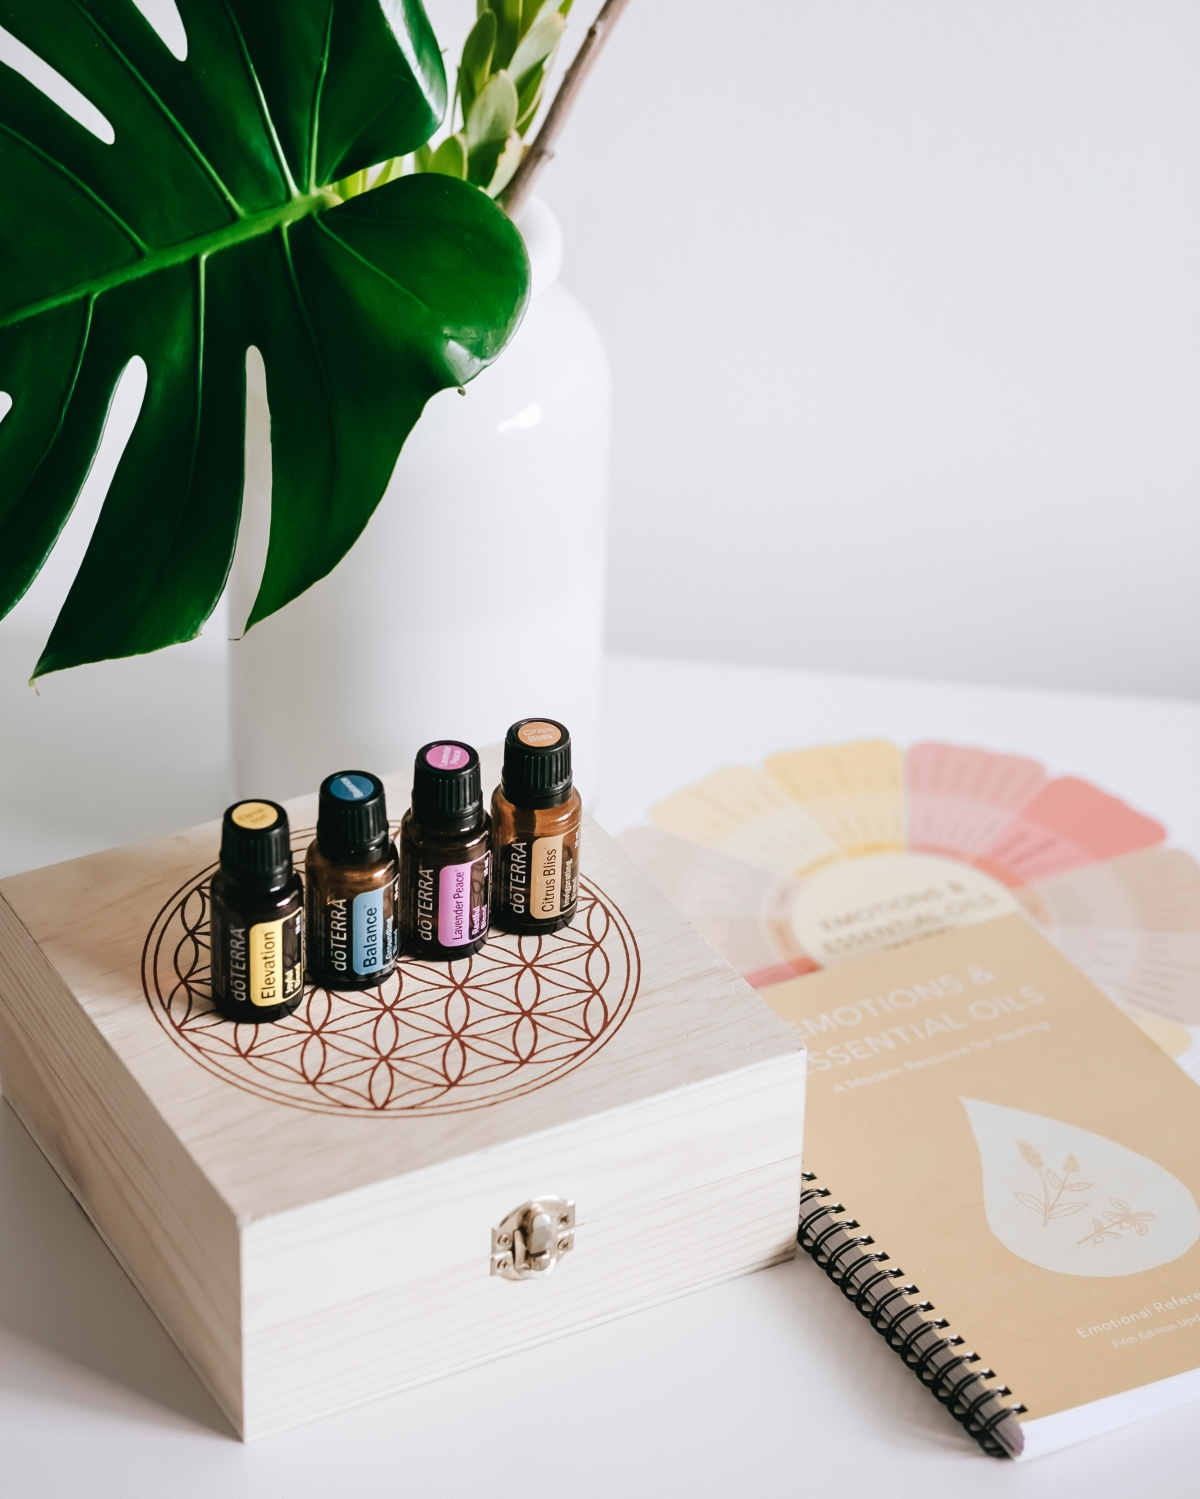 Using Essential Oils for Emotional Support